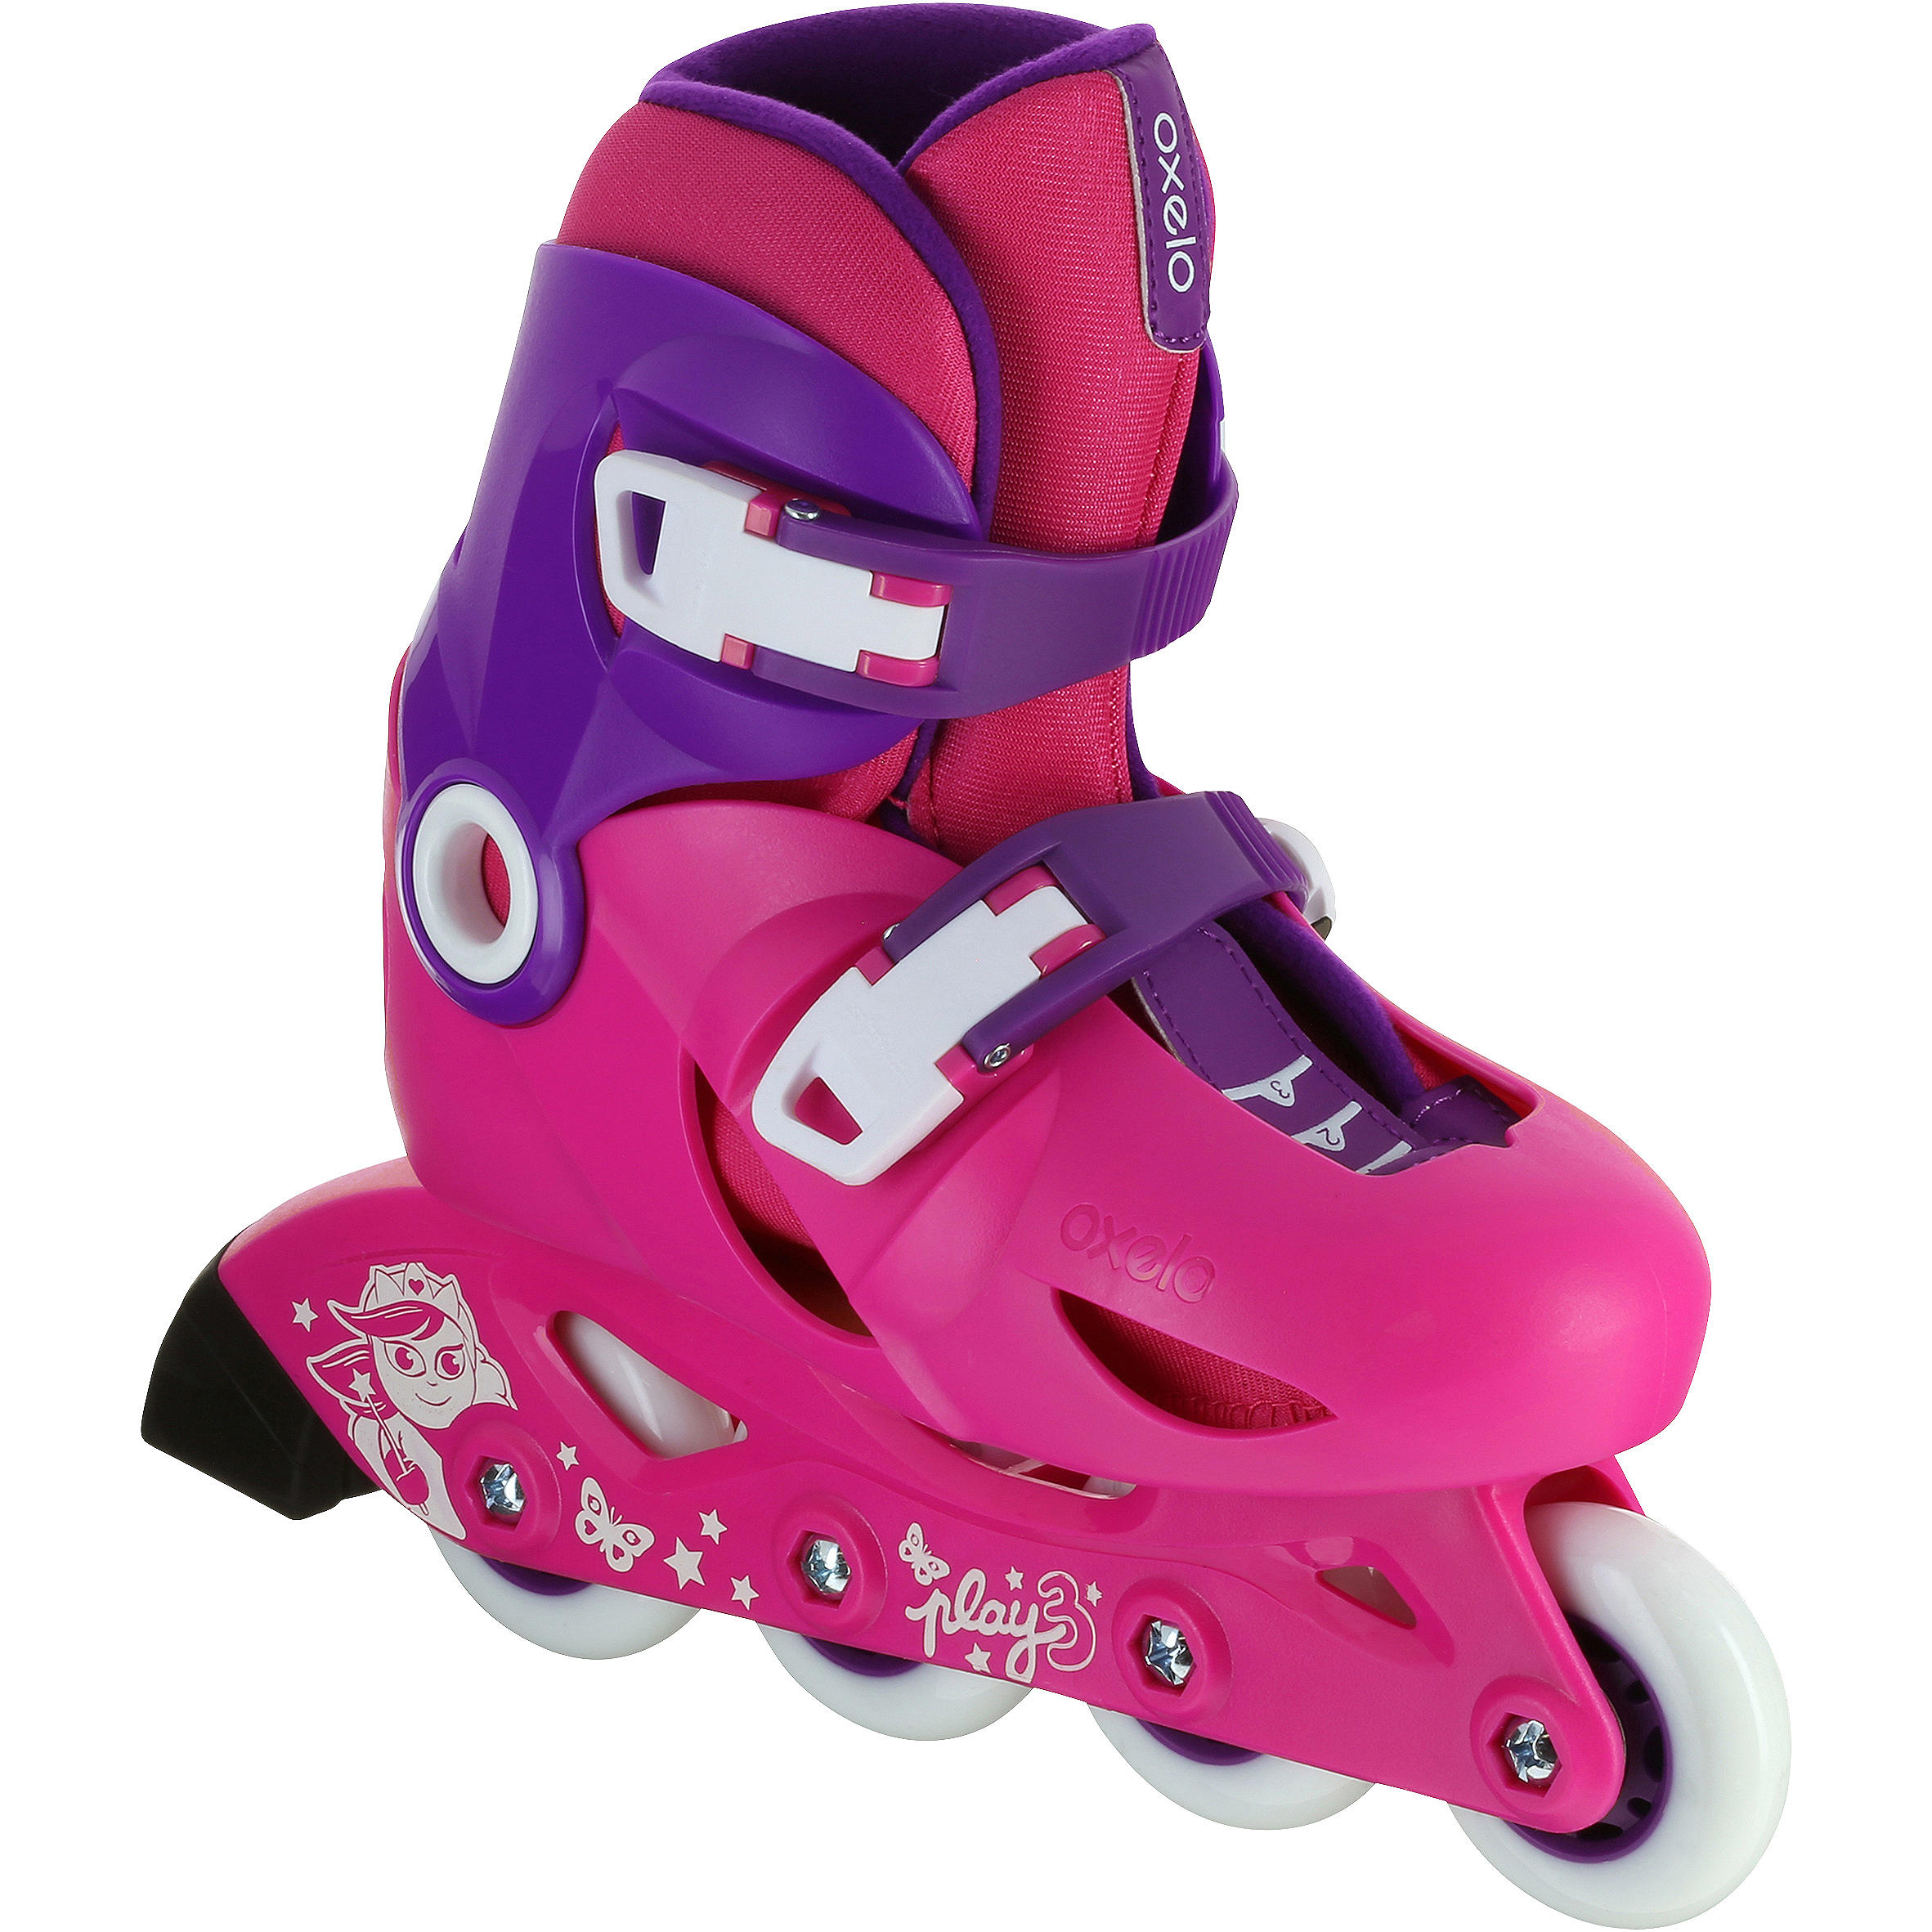 Play 3 Kids' Inline Skates - Pink/Purple